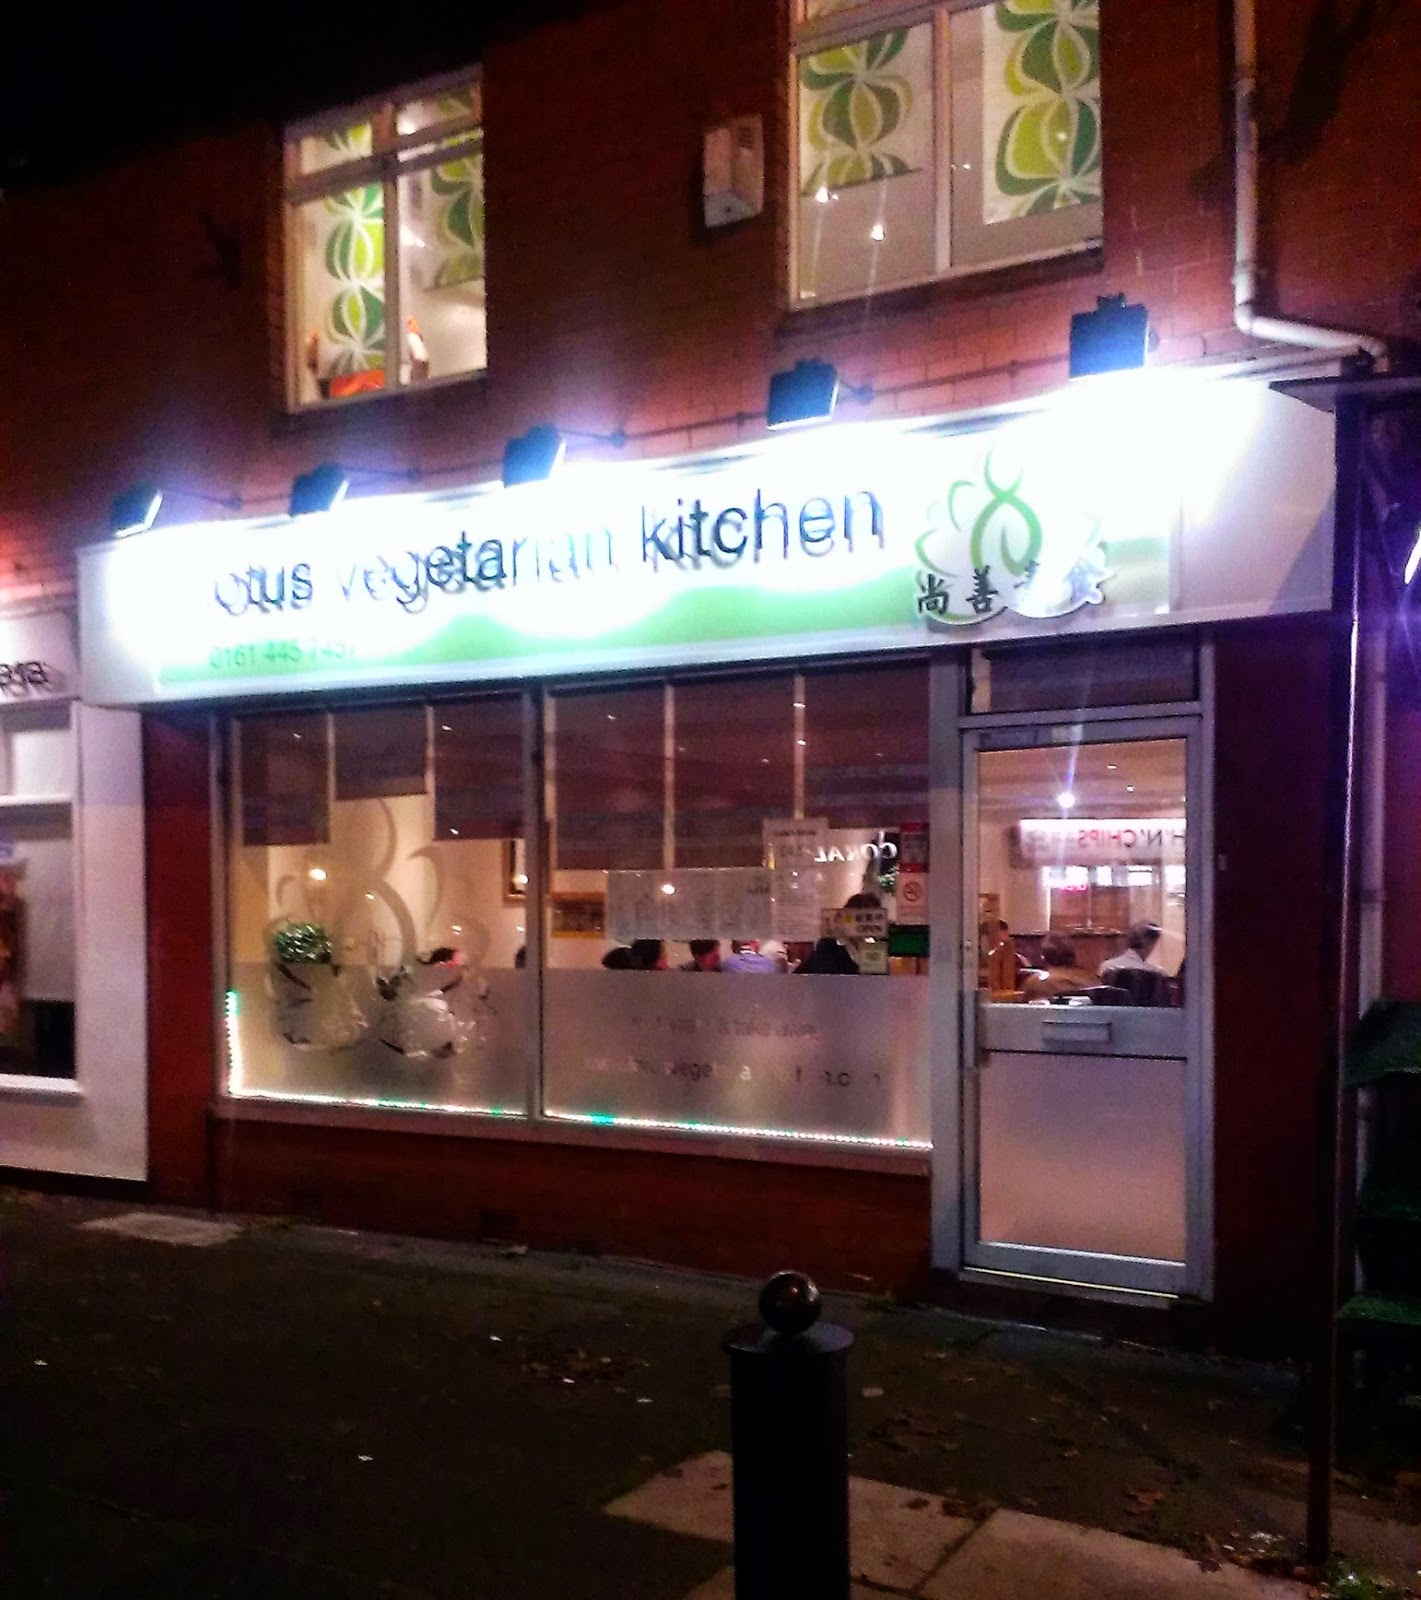 Manchester: Lotus Vegetarian Kitchen |